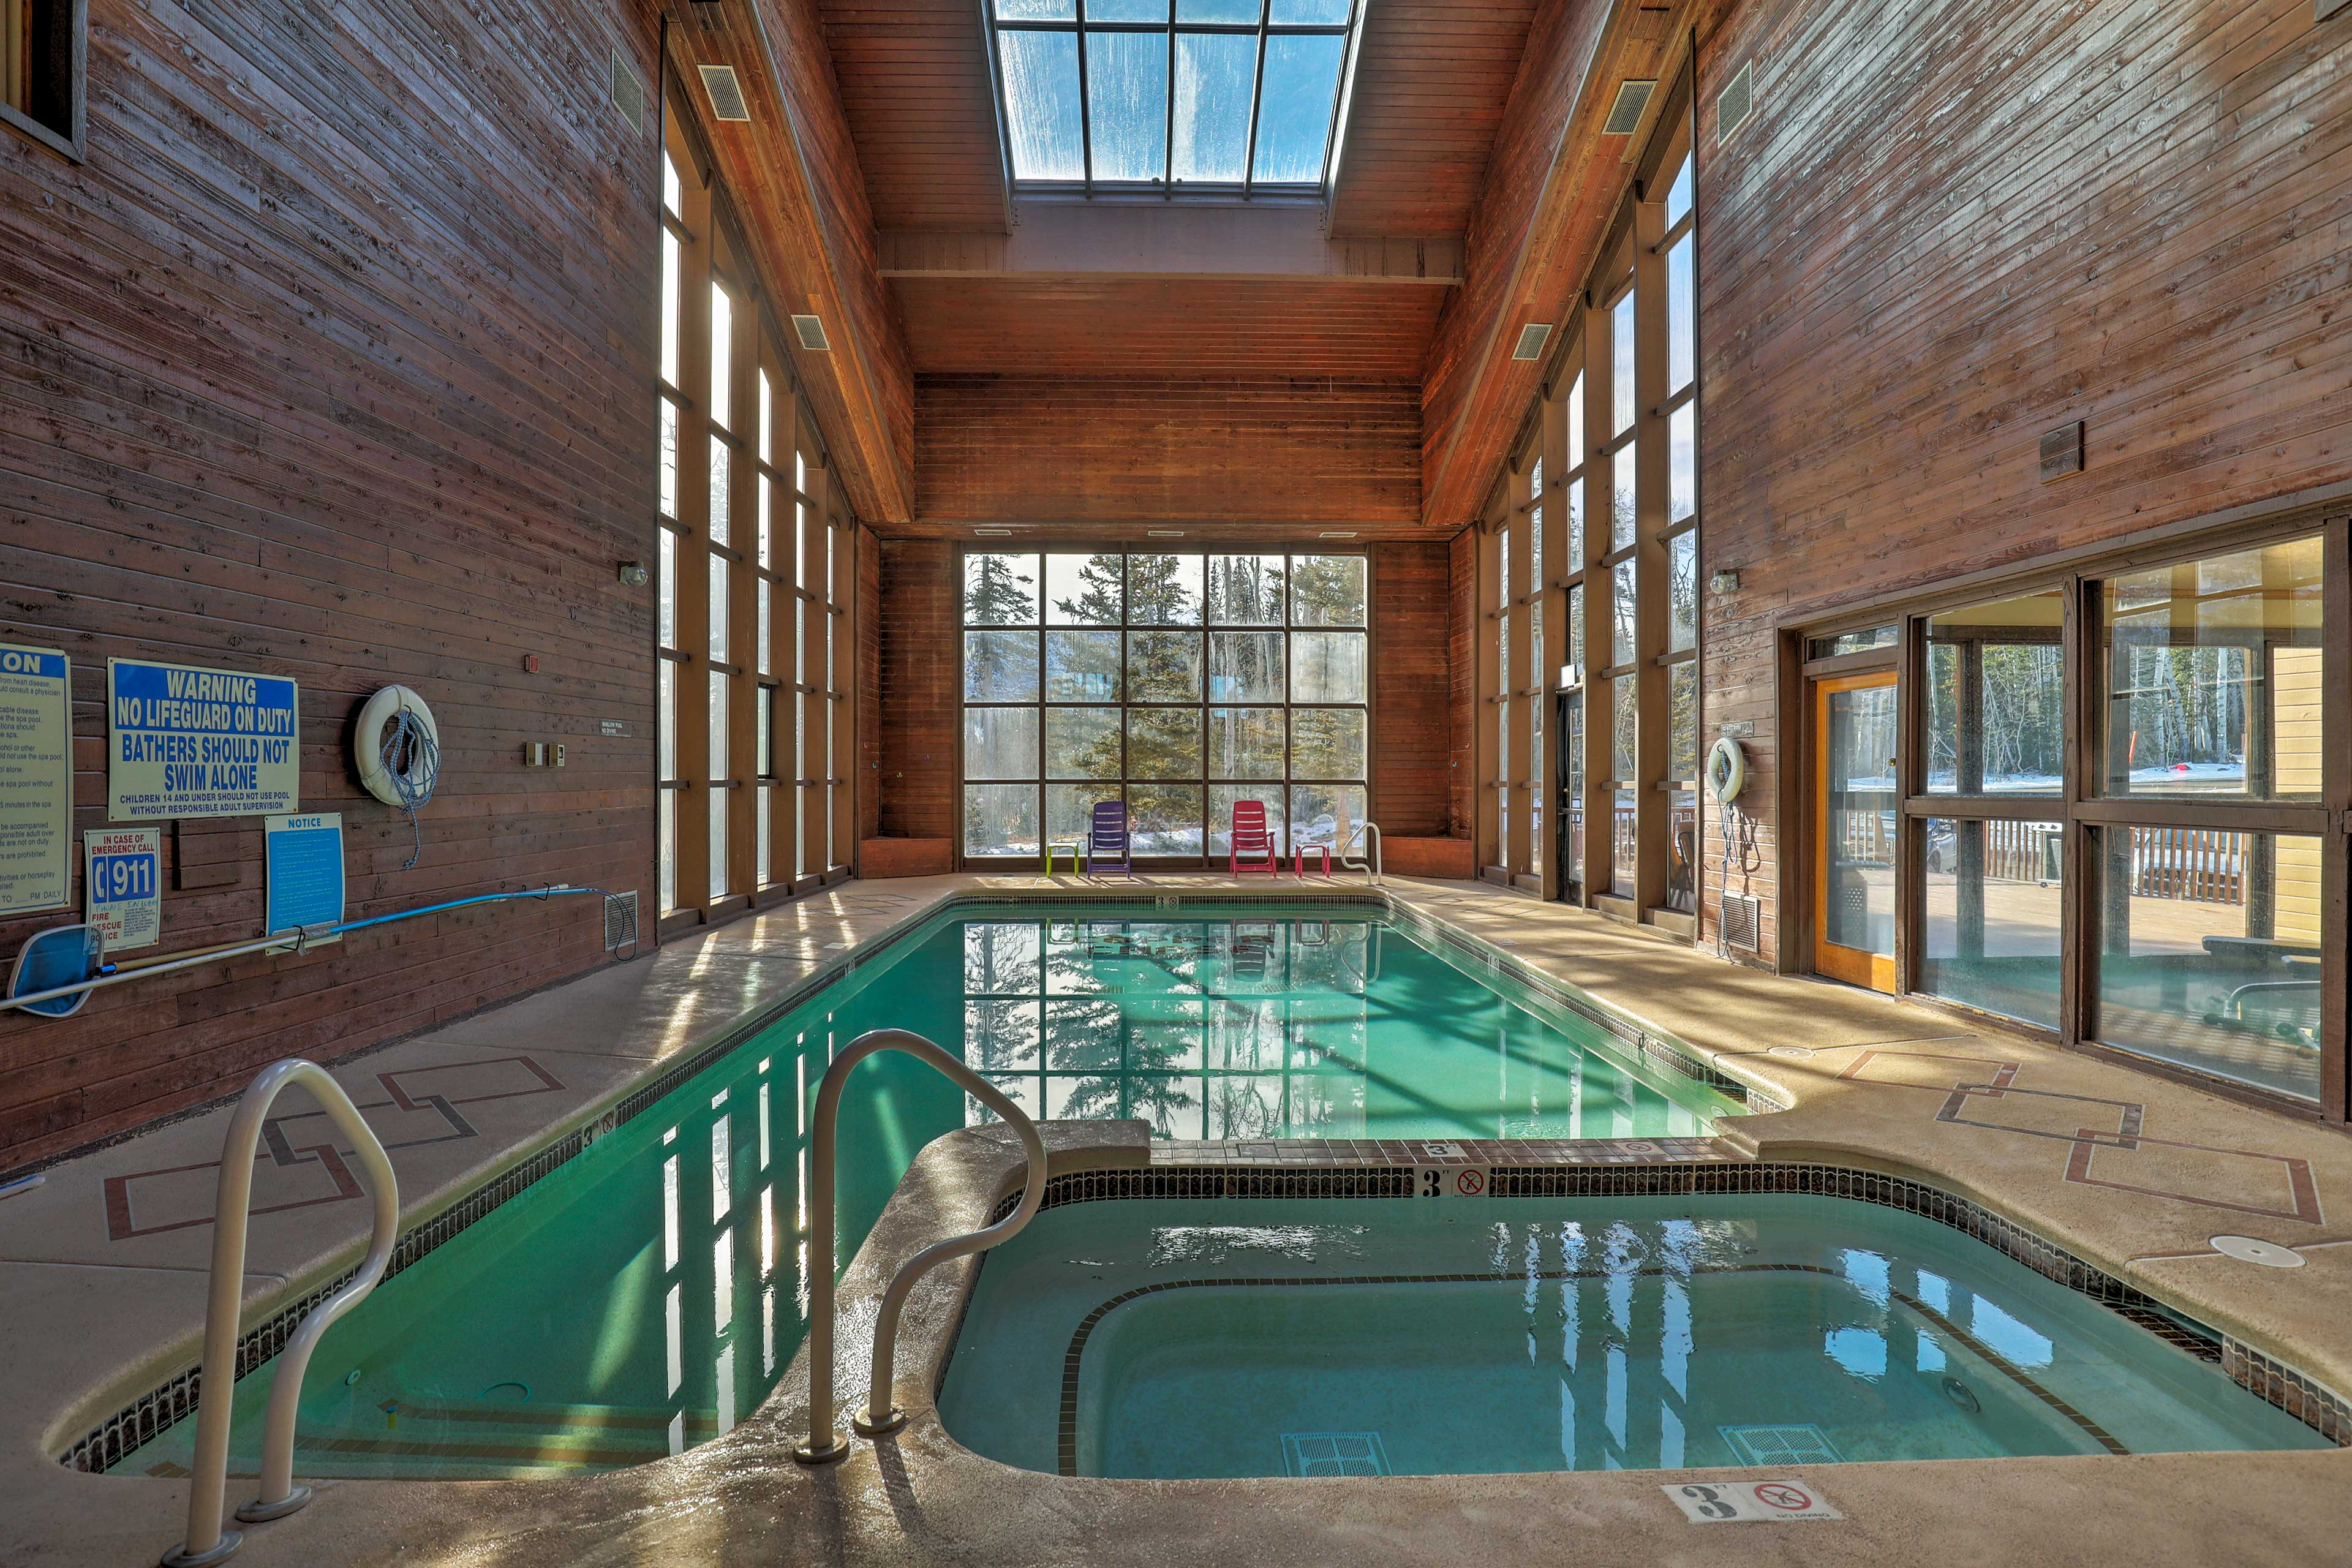 Enjoy the community pool and hot tub no matter the weather.